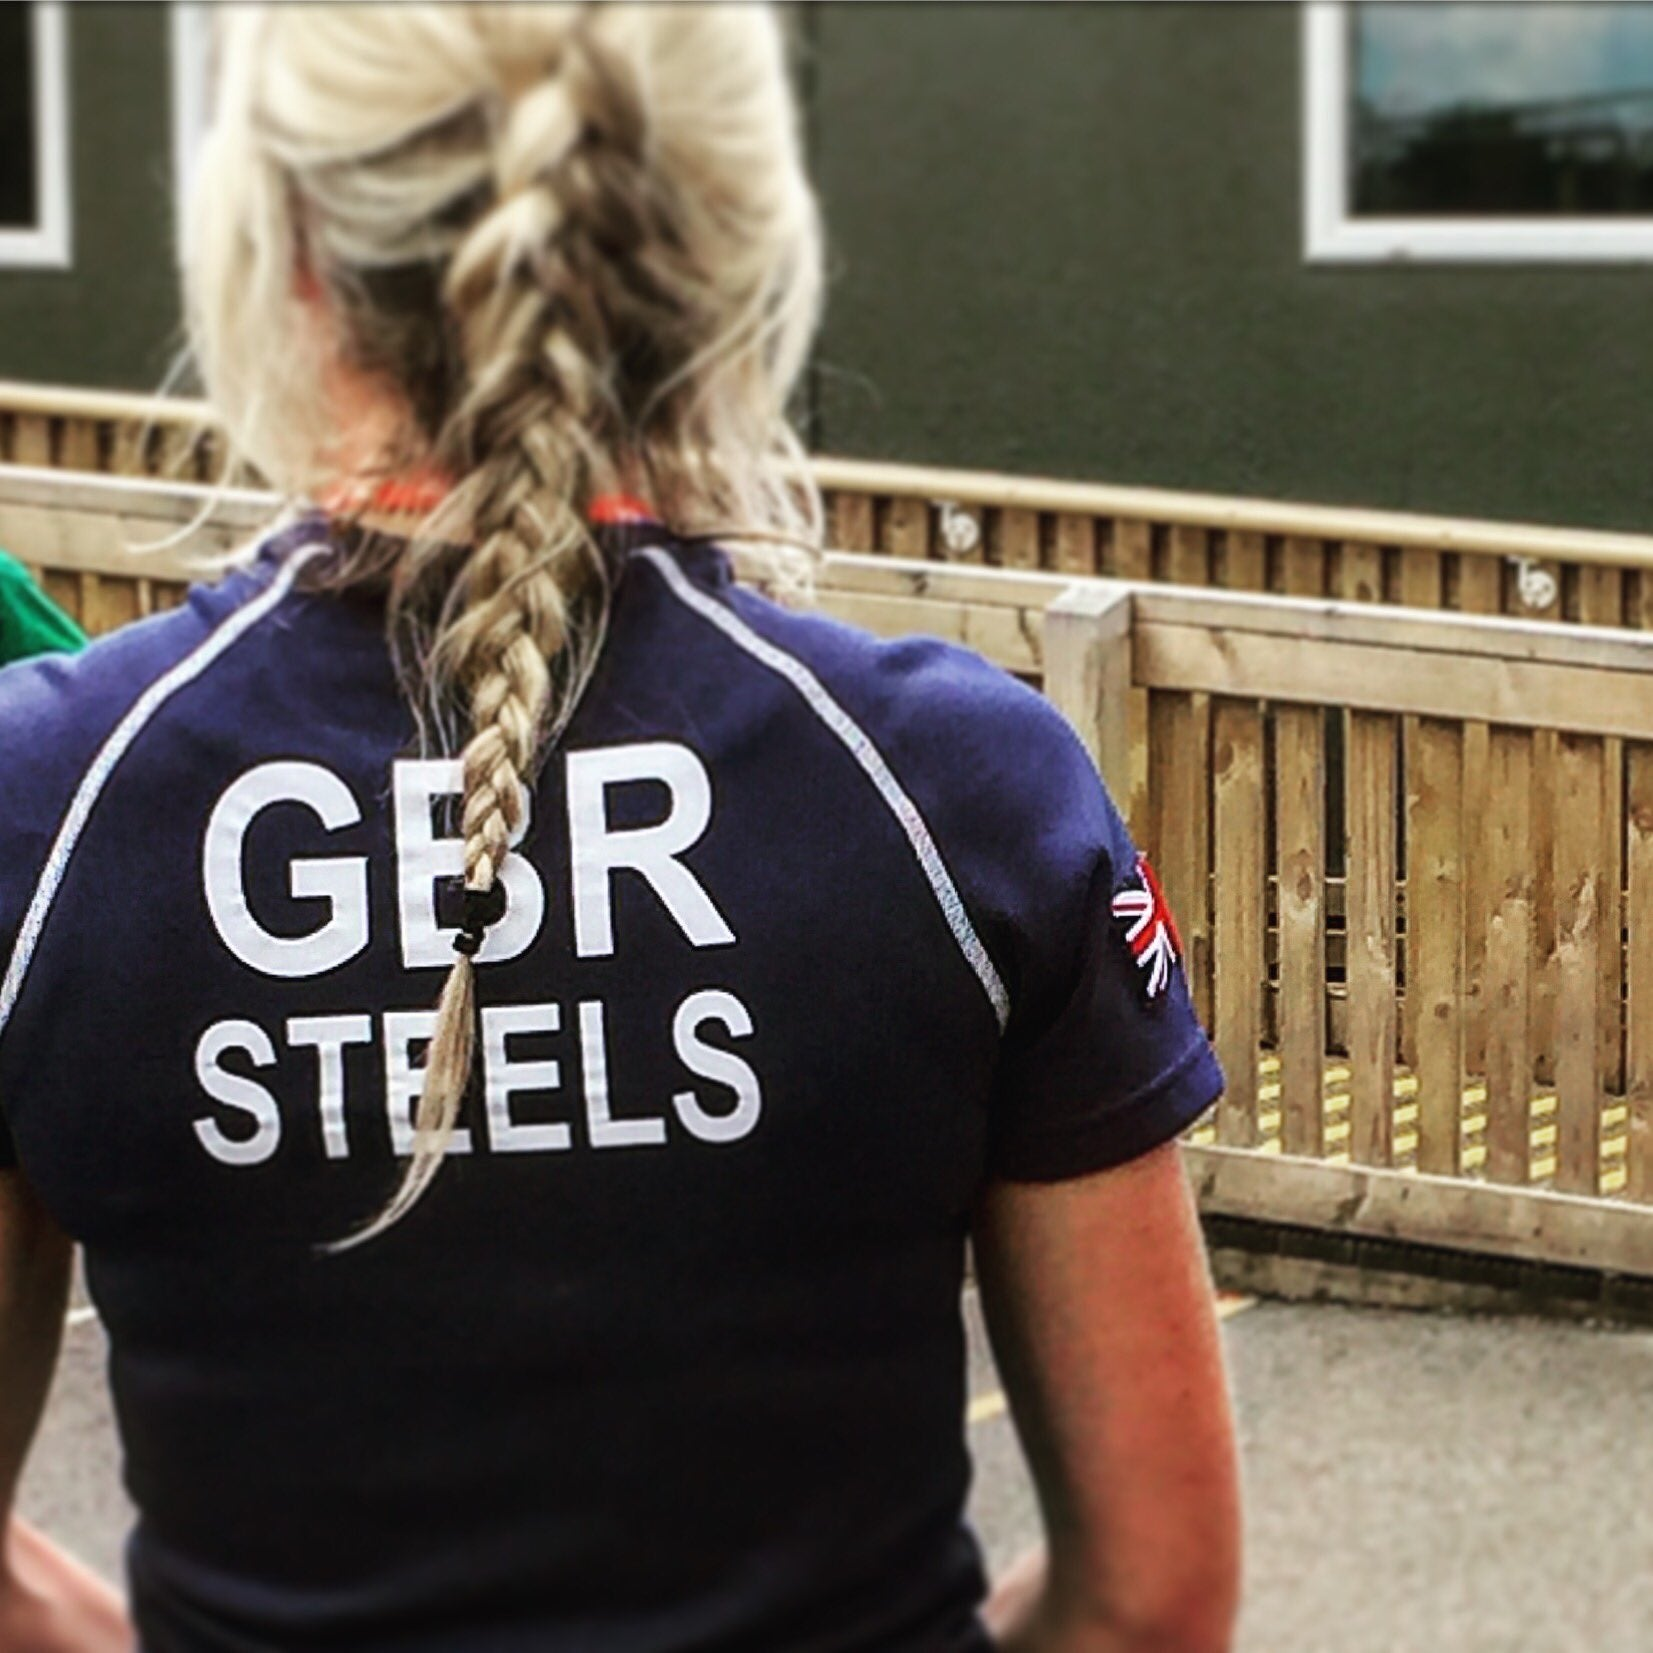 Claire Steels GBR